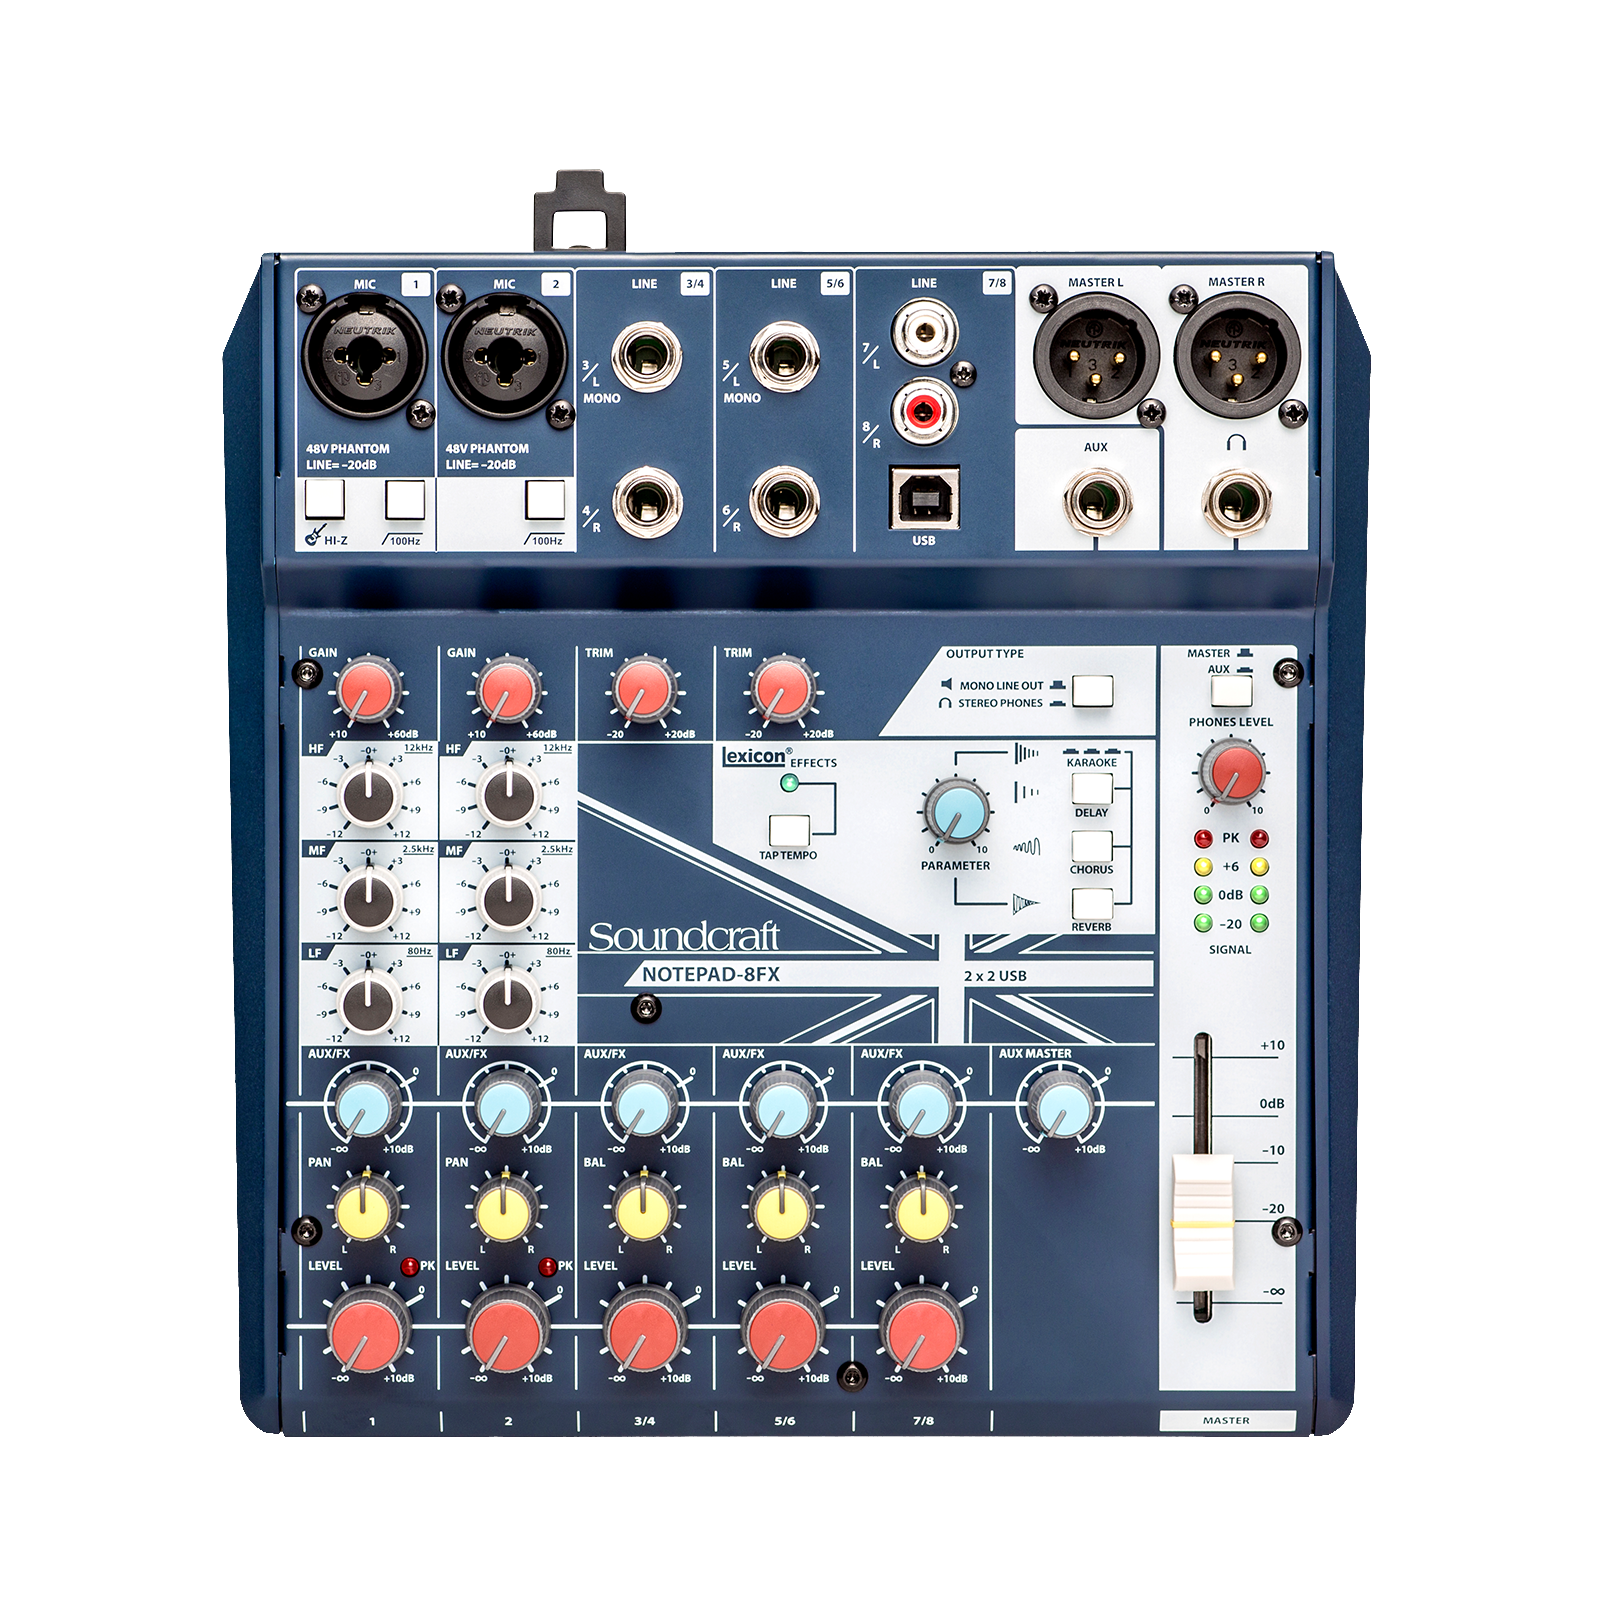 Notepad-8FX - Dark Blue - Small-format analog mixing console with USB I/O and Lexicon effects - Front